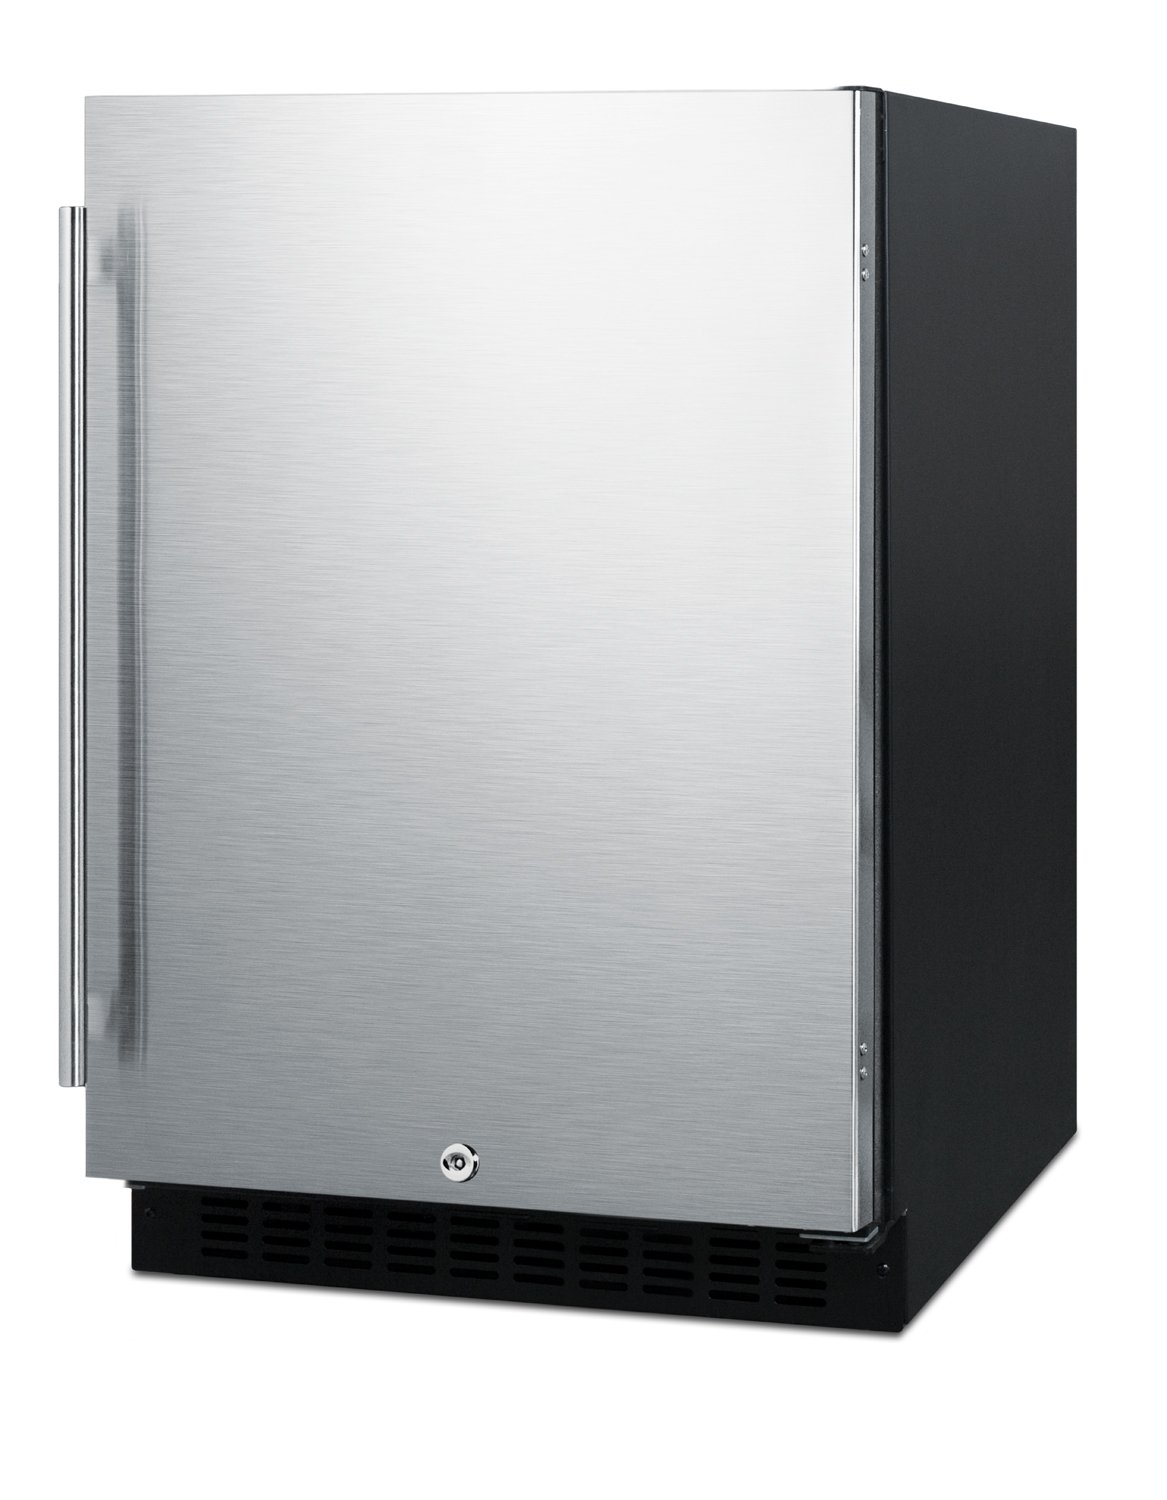 "Summit AL54 ADA Height 24"" Built-In Undercounter Refrigerator with Glass Shelves and Door Storage, Stainless Steel/Black"